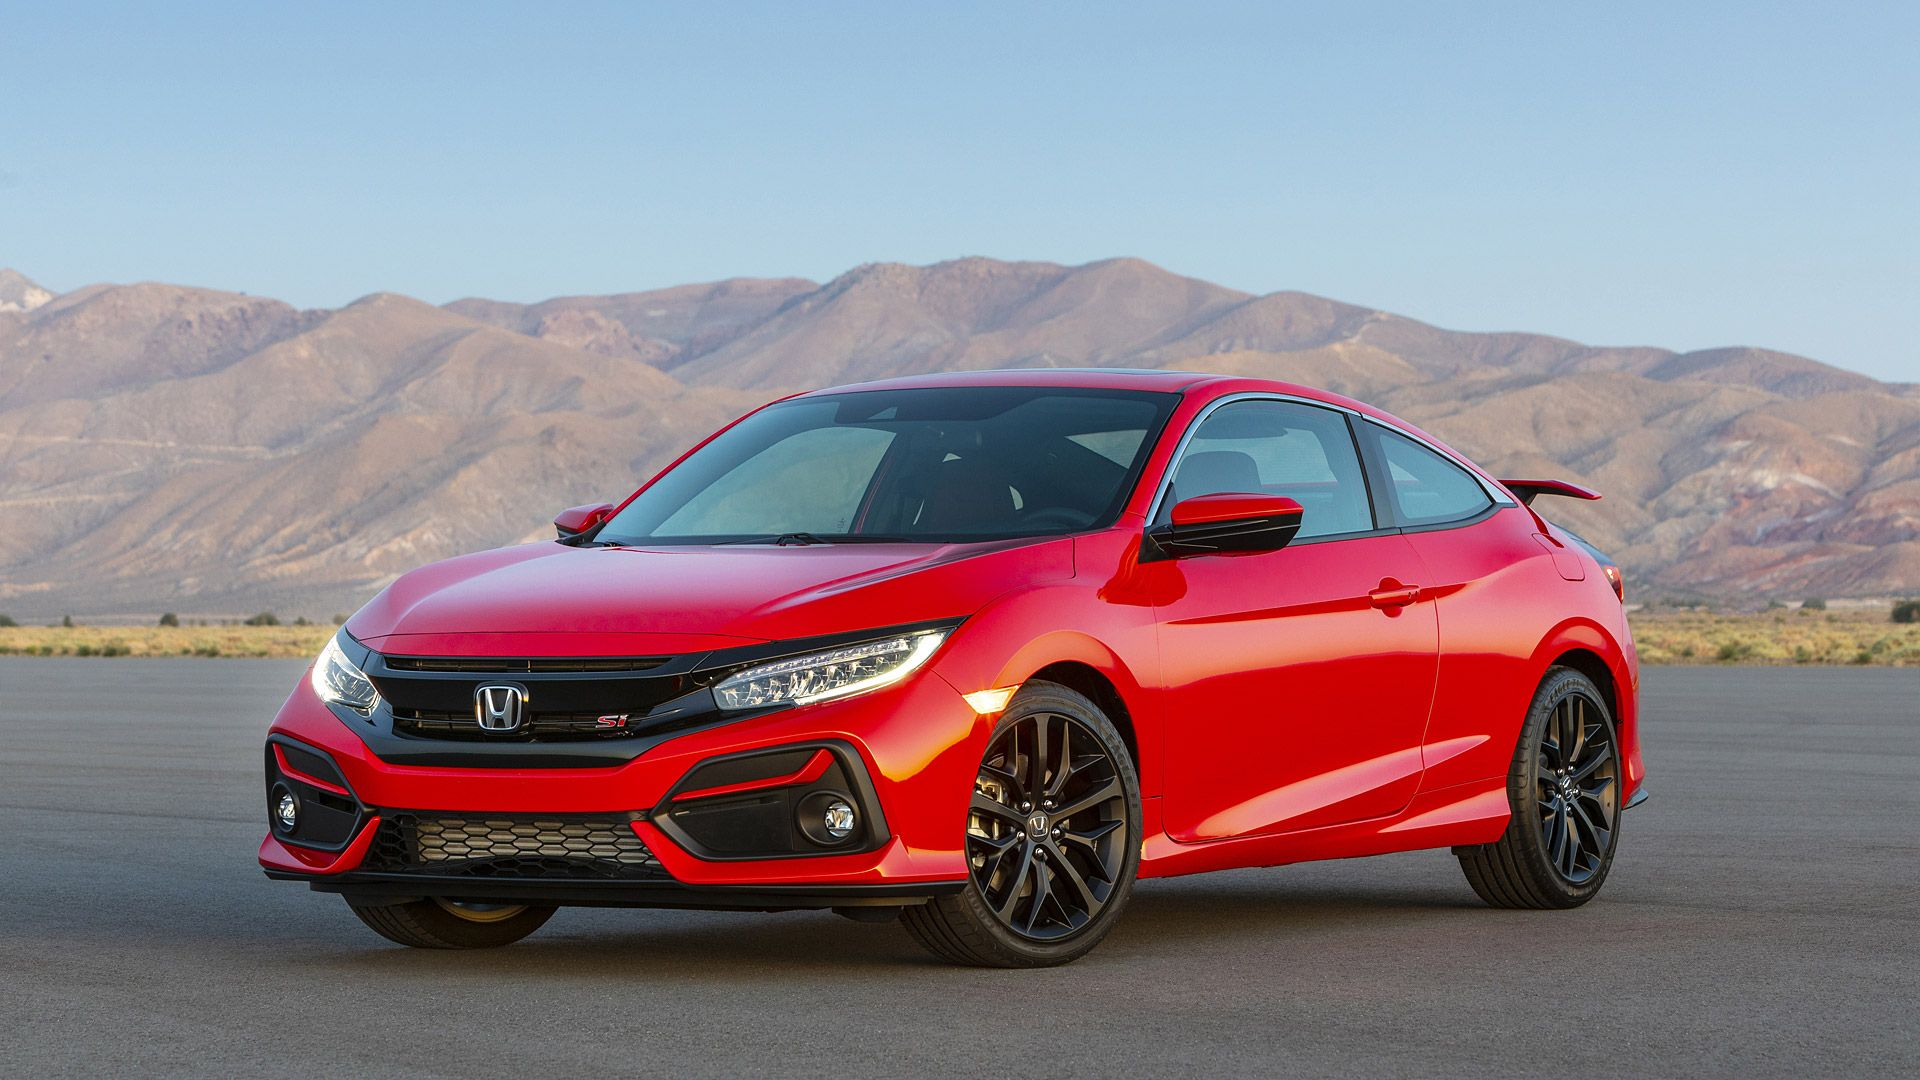 The Honda Civic Si Coupe and Sedan have both received